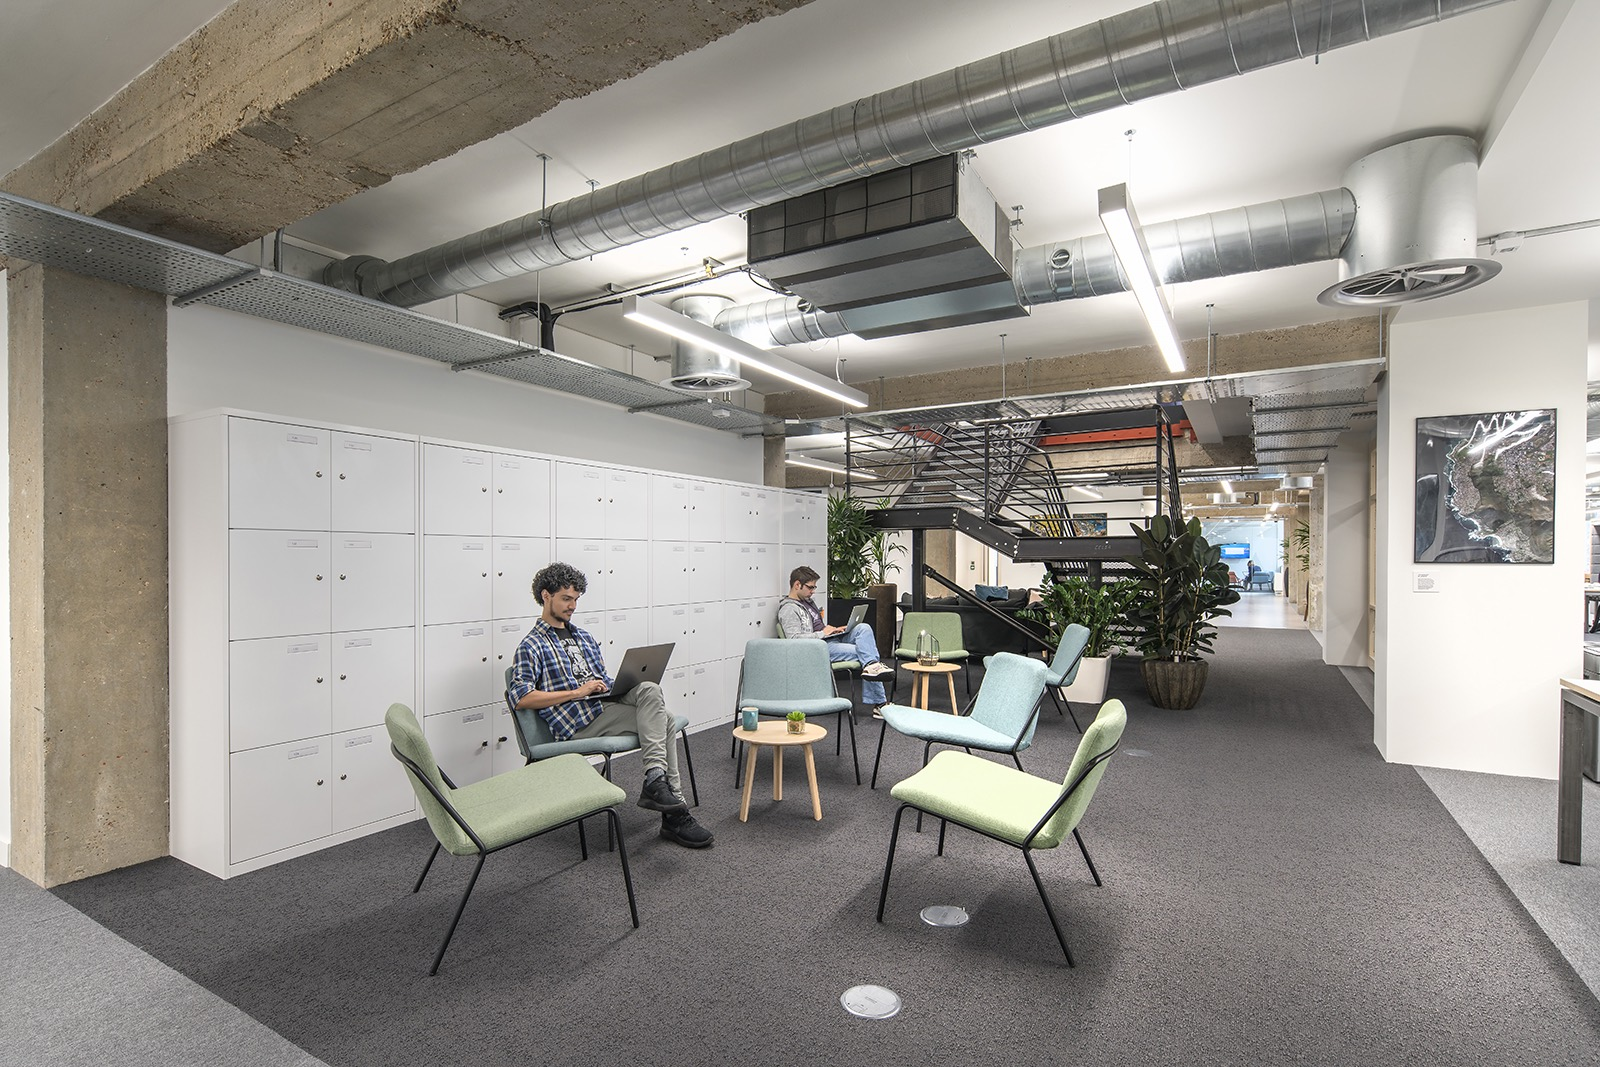 gocardless-london-office-9